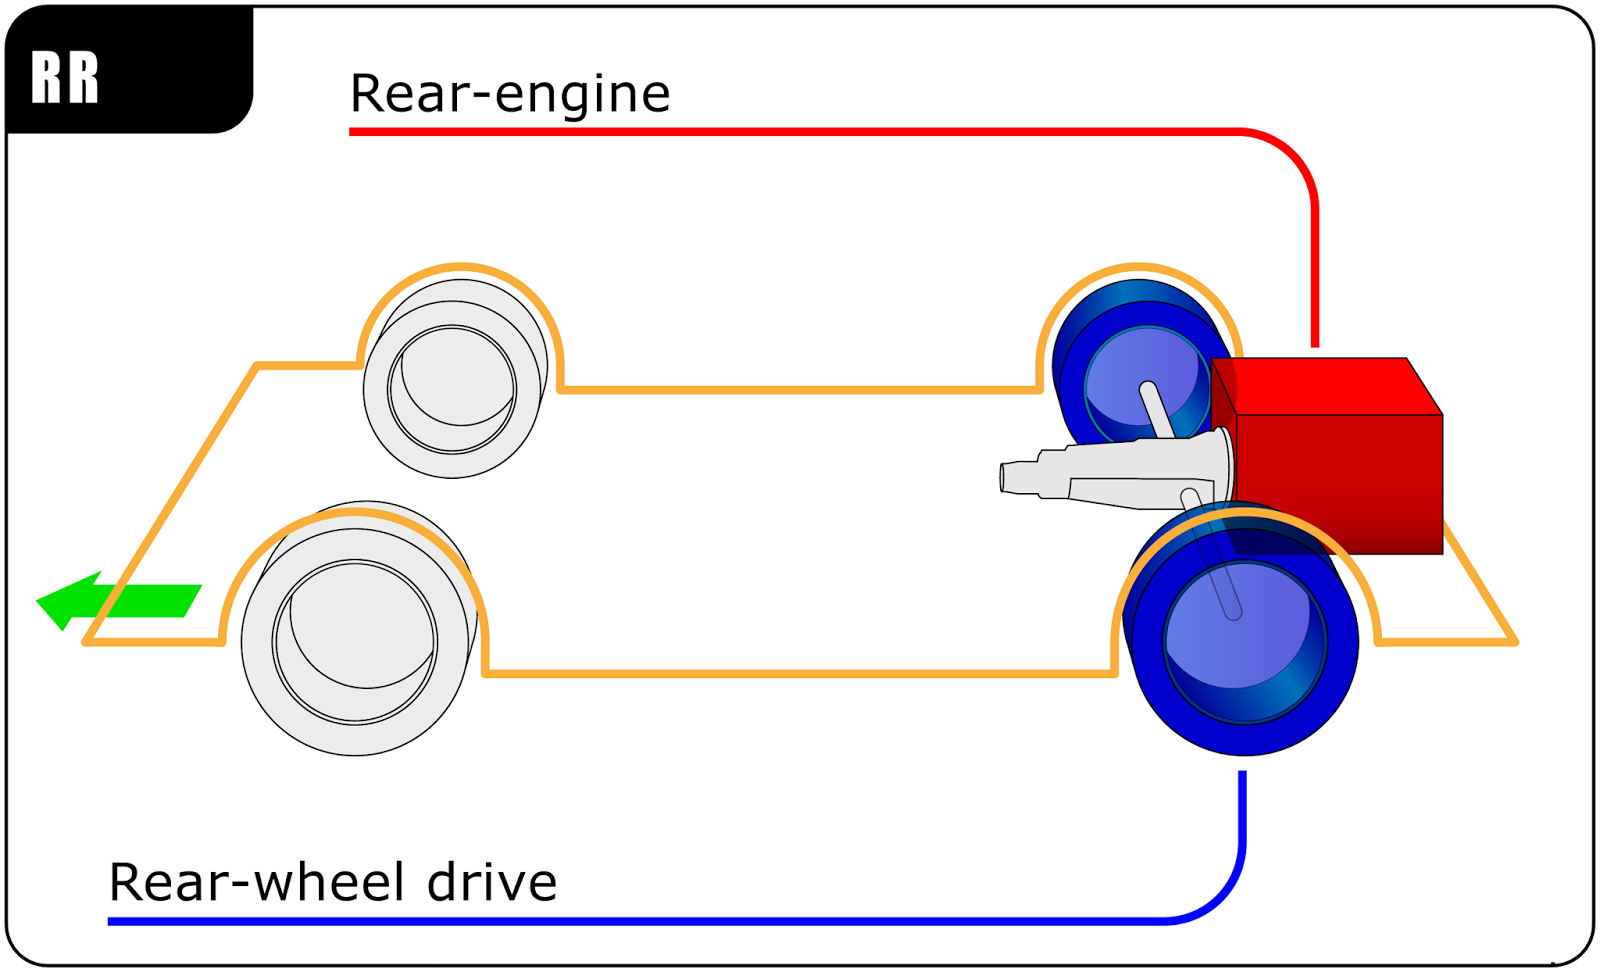 Mecanico Engenheiros 2015 01twinchargertheoryturbocharger Layout Diagram Rear Engine Wheel Drive Places Both The And Wheels At Of Vehicle